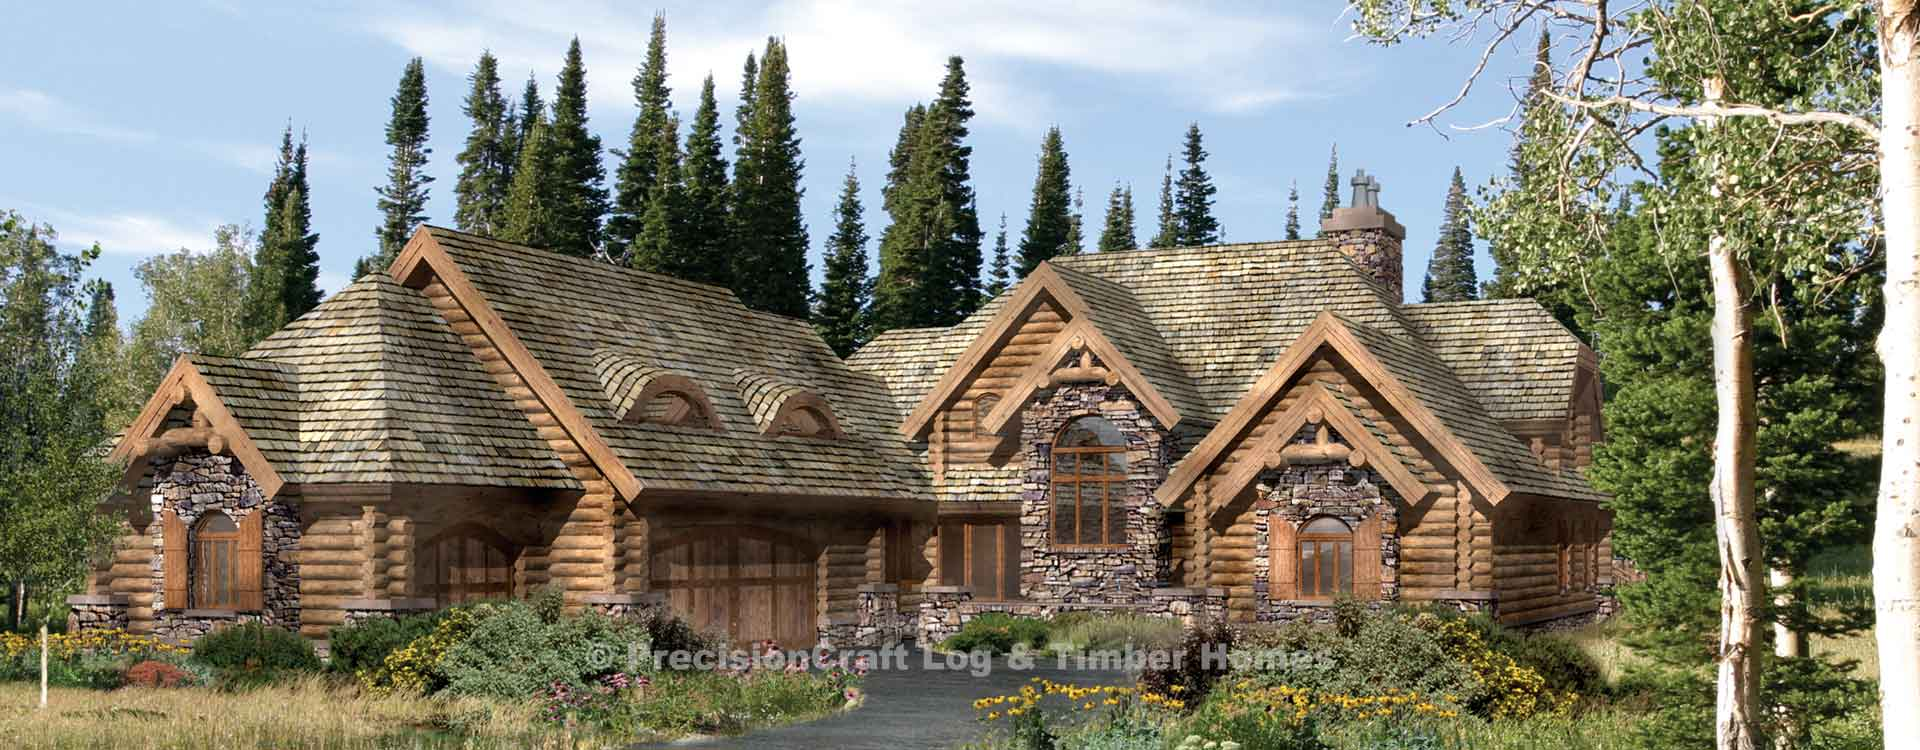 Timber Frame and Log Home Floor Plans - By PrecisionCraft